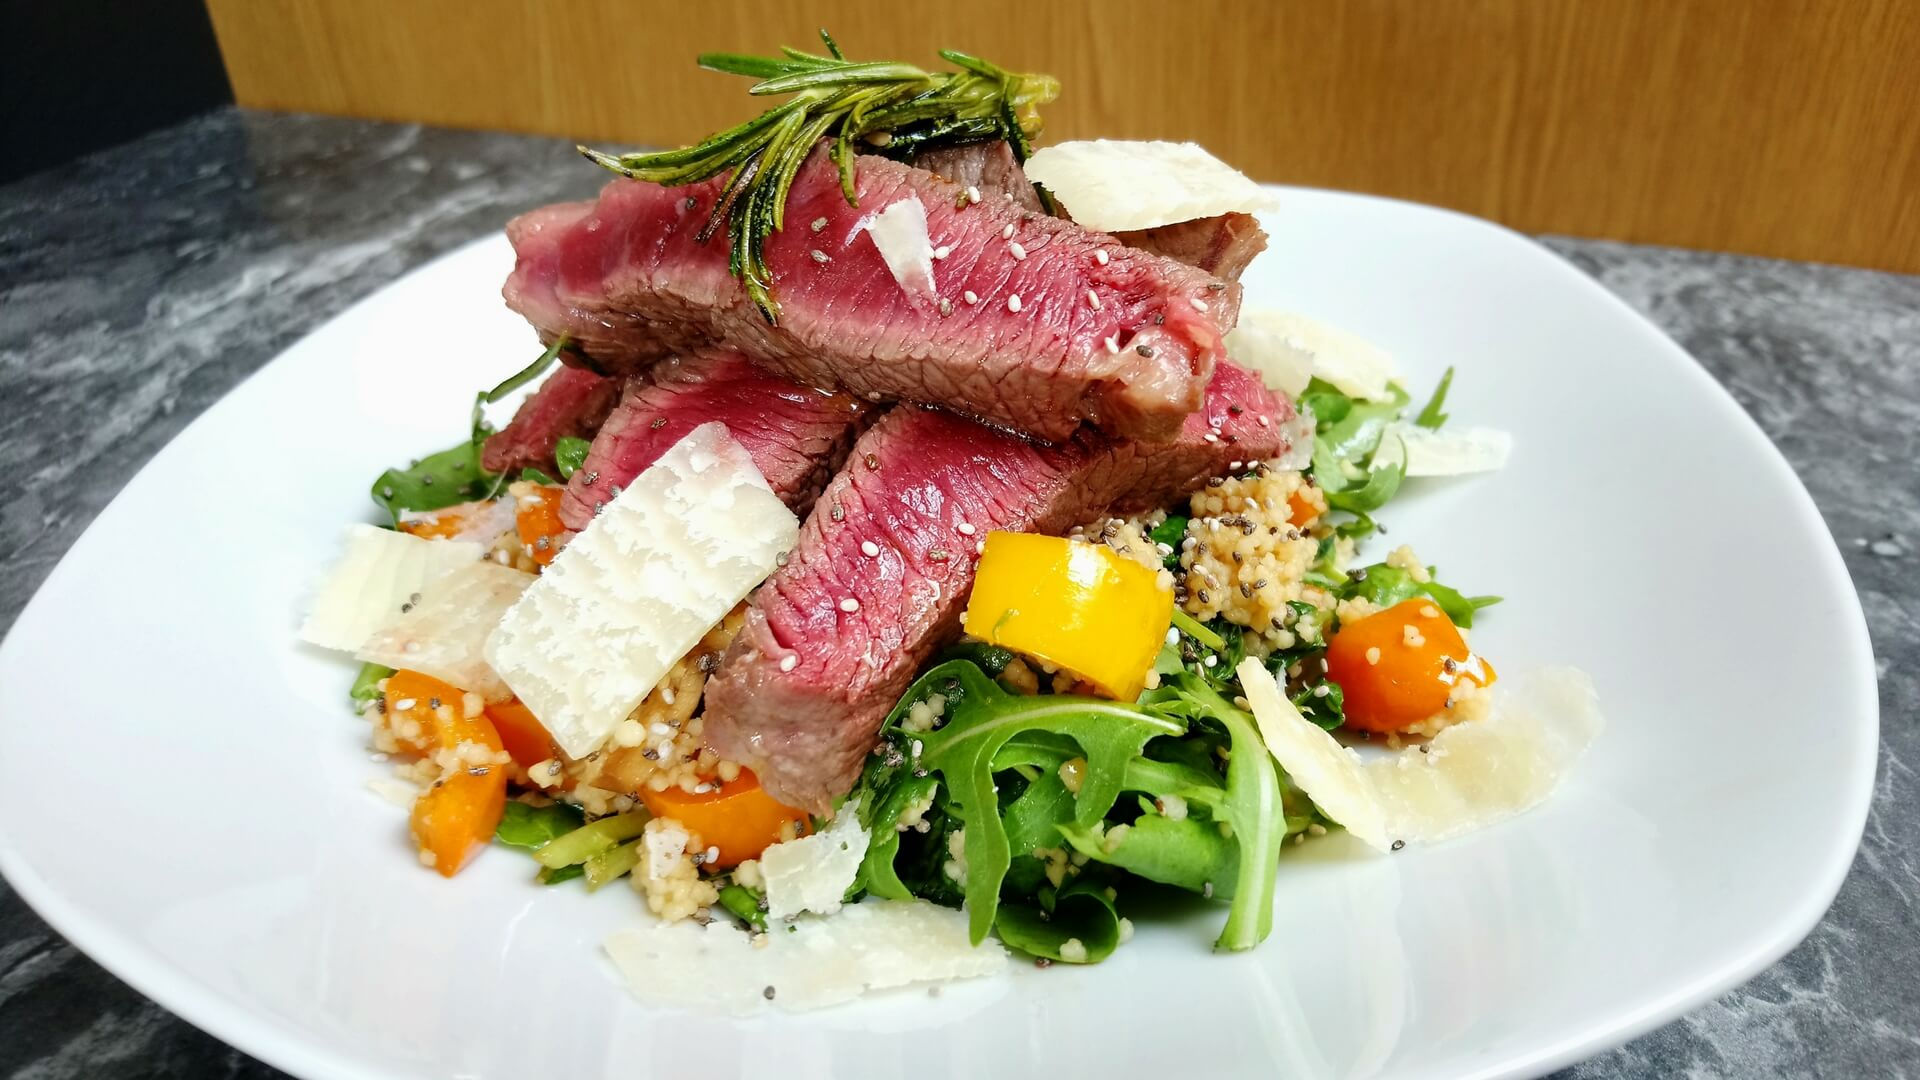 Mixed leaf salad with chia seeds and steak